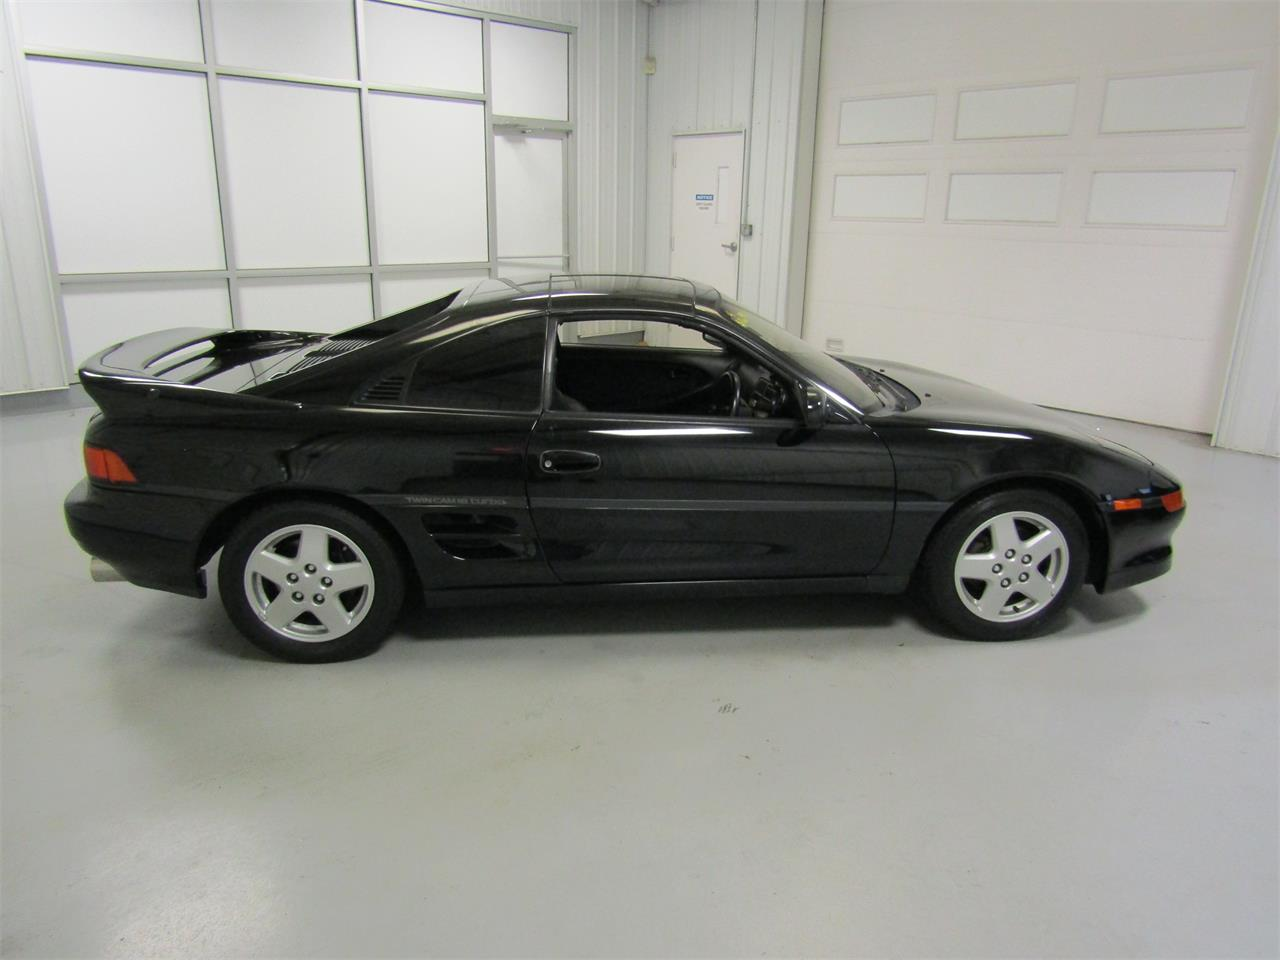 Large Picture of '92 MR2 located in Virginia - $16,991.00 - OLED